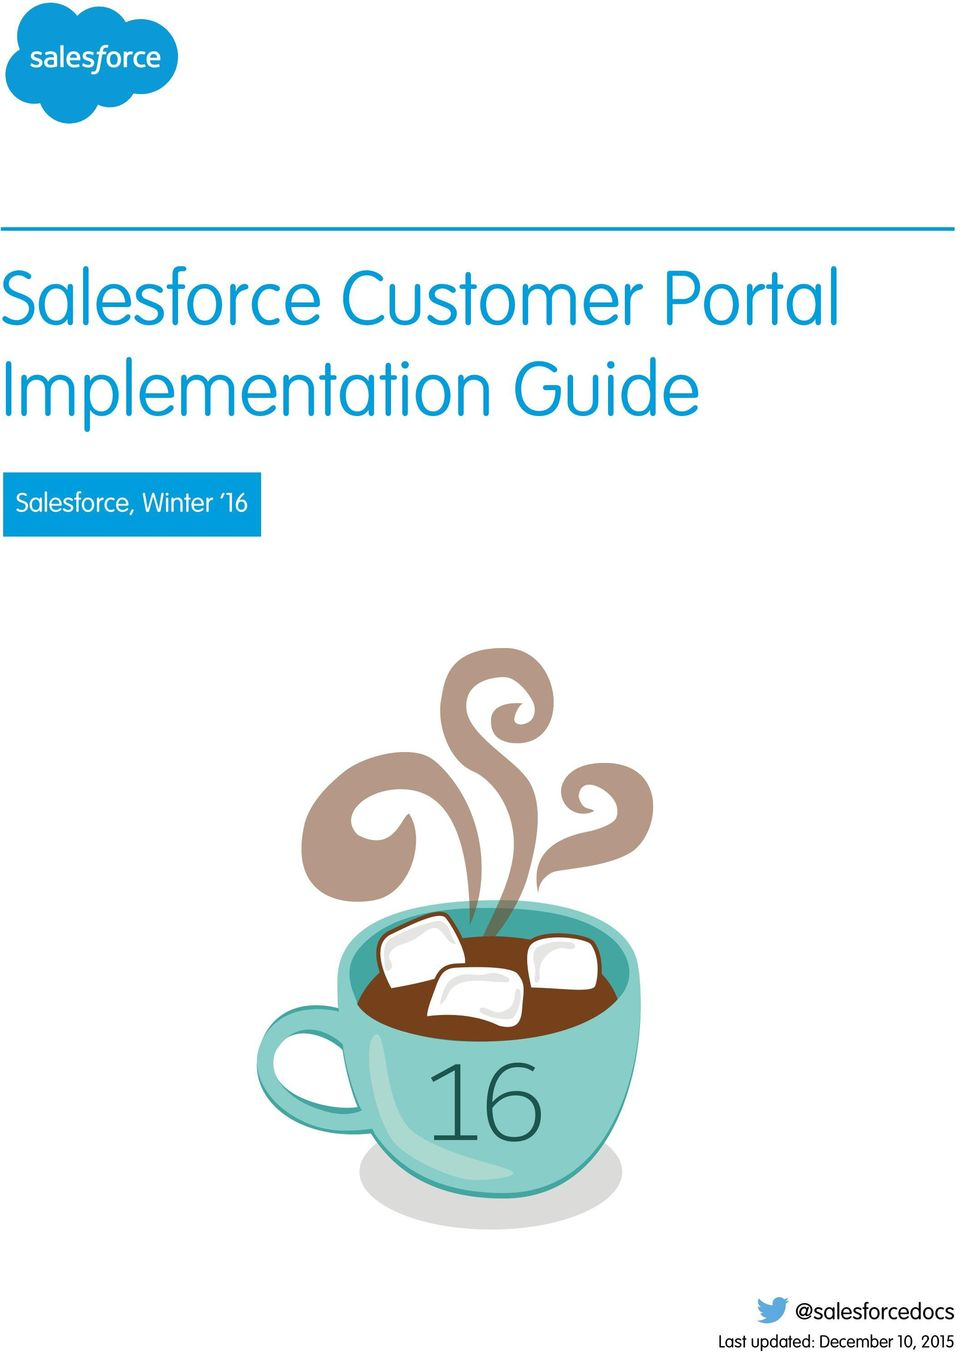 Salesforce, Winter 16